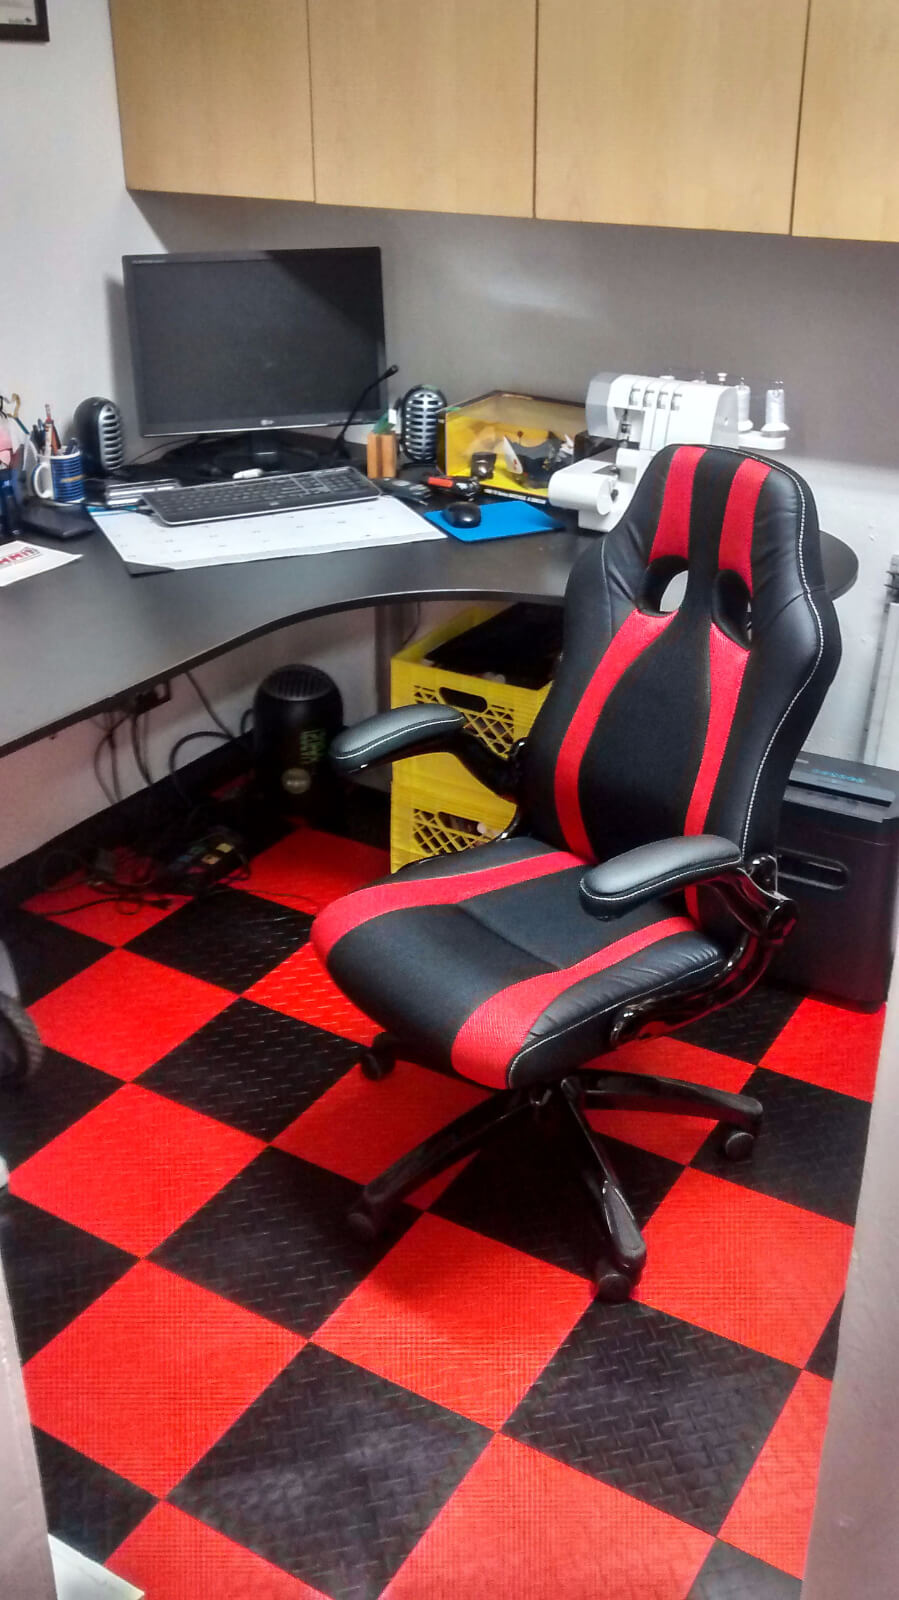 The black and red flooring extends to this office area.